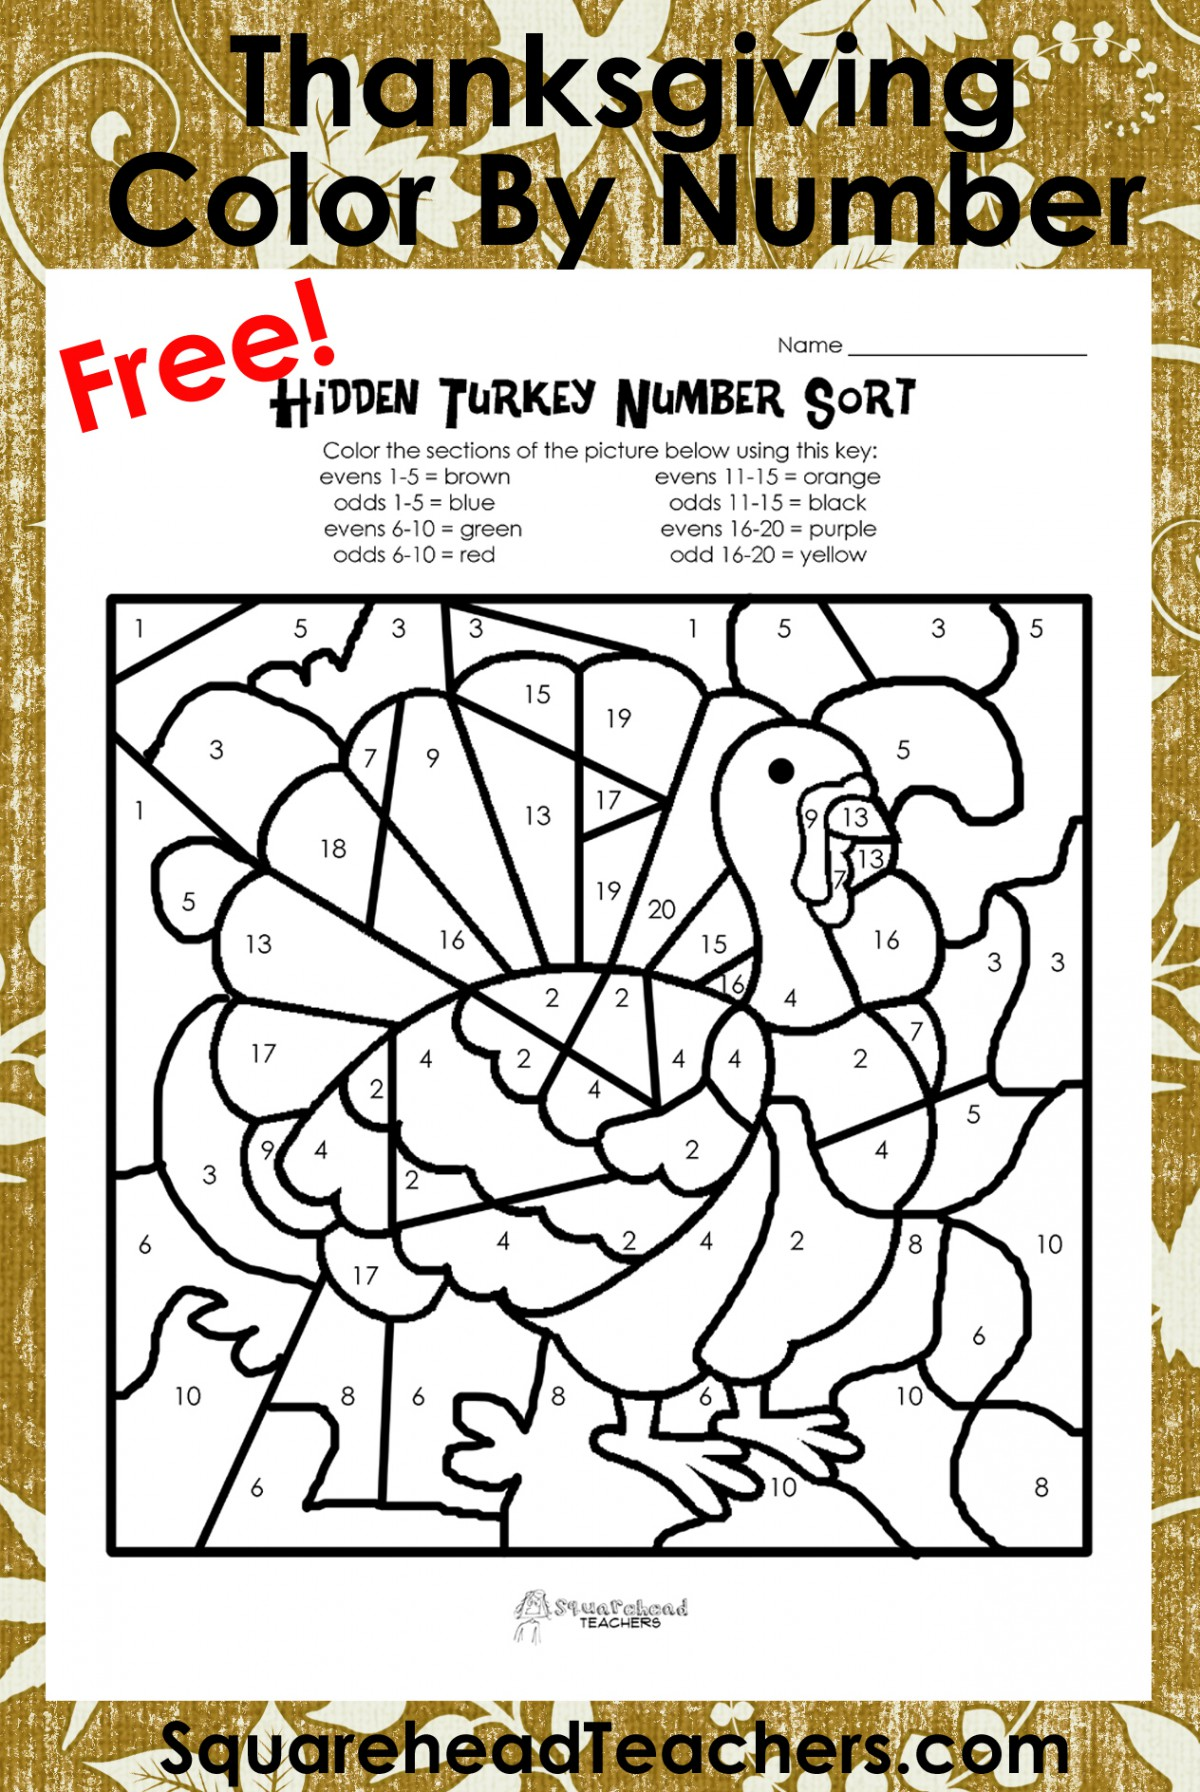 Thanksgiving Color By Number Addition Worksheets